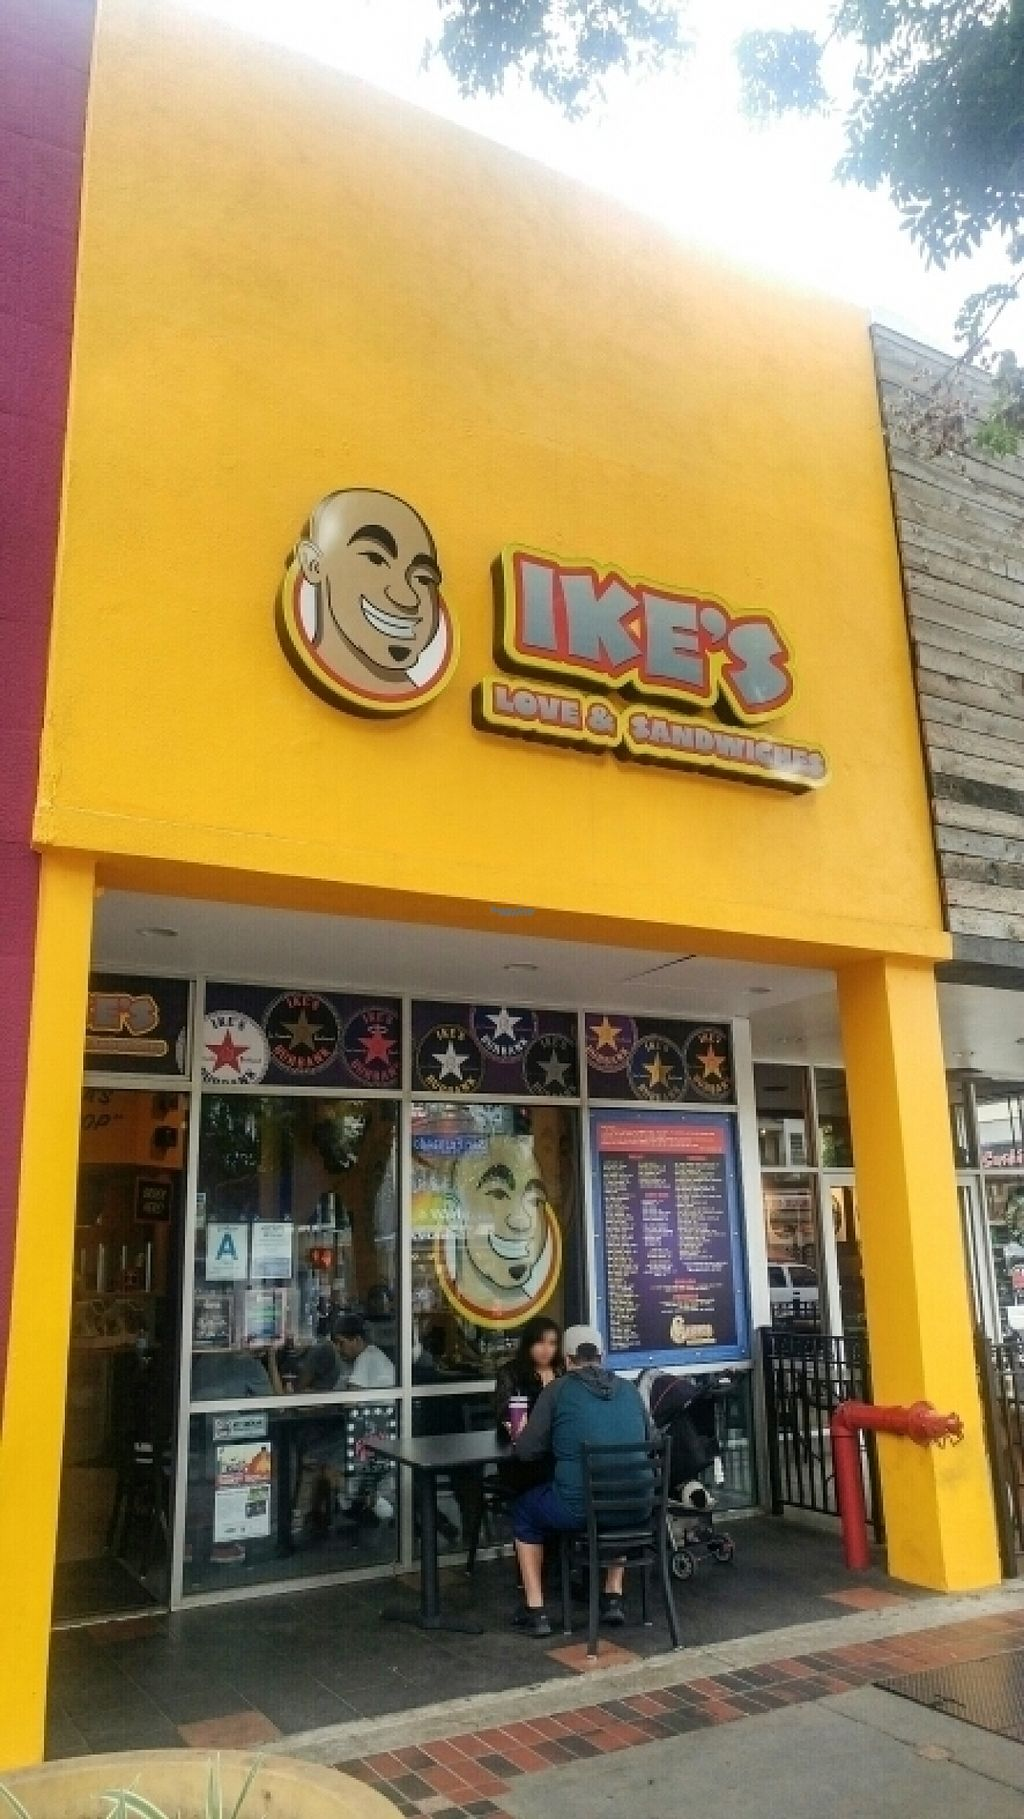 """Photo of Ike's  by <a href=""""/members/profile/Passittowill"""">Passittowill</a> <br/>Store front <br/> October 31, 2016  - <a href='/contact/abuse/image/82151/185630'>Report</a>"""